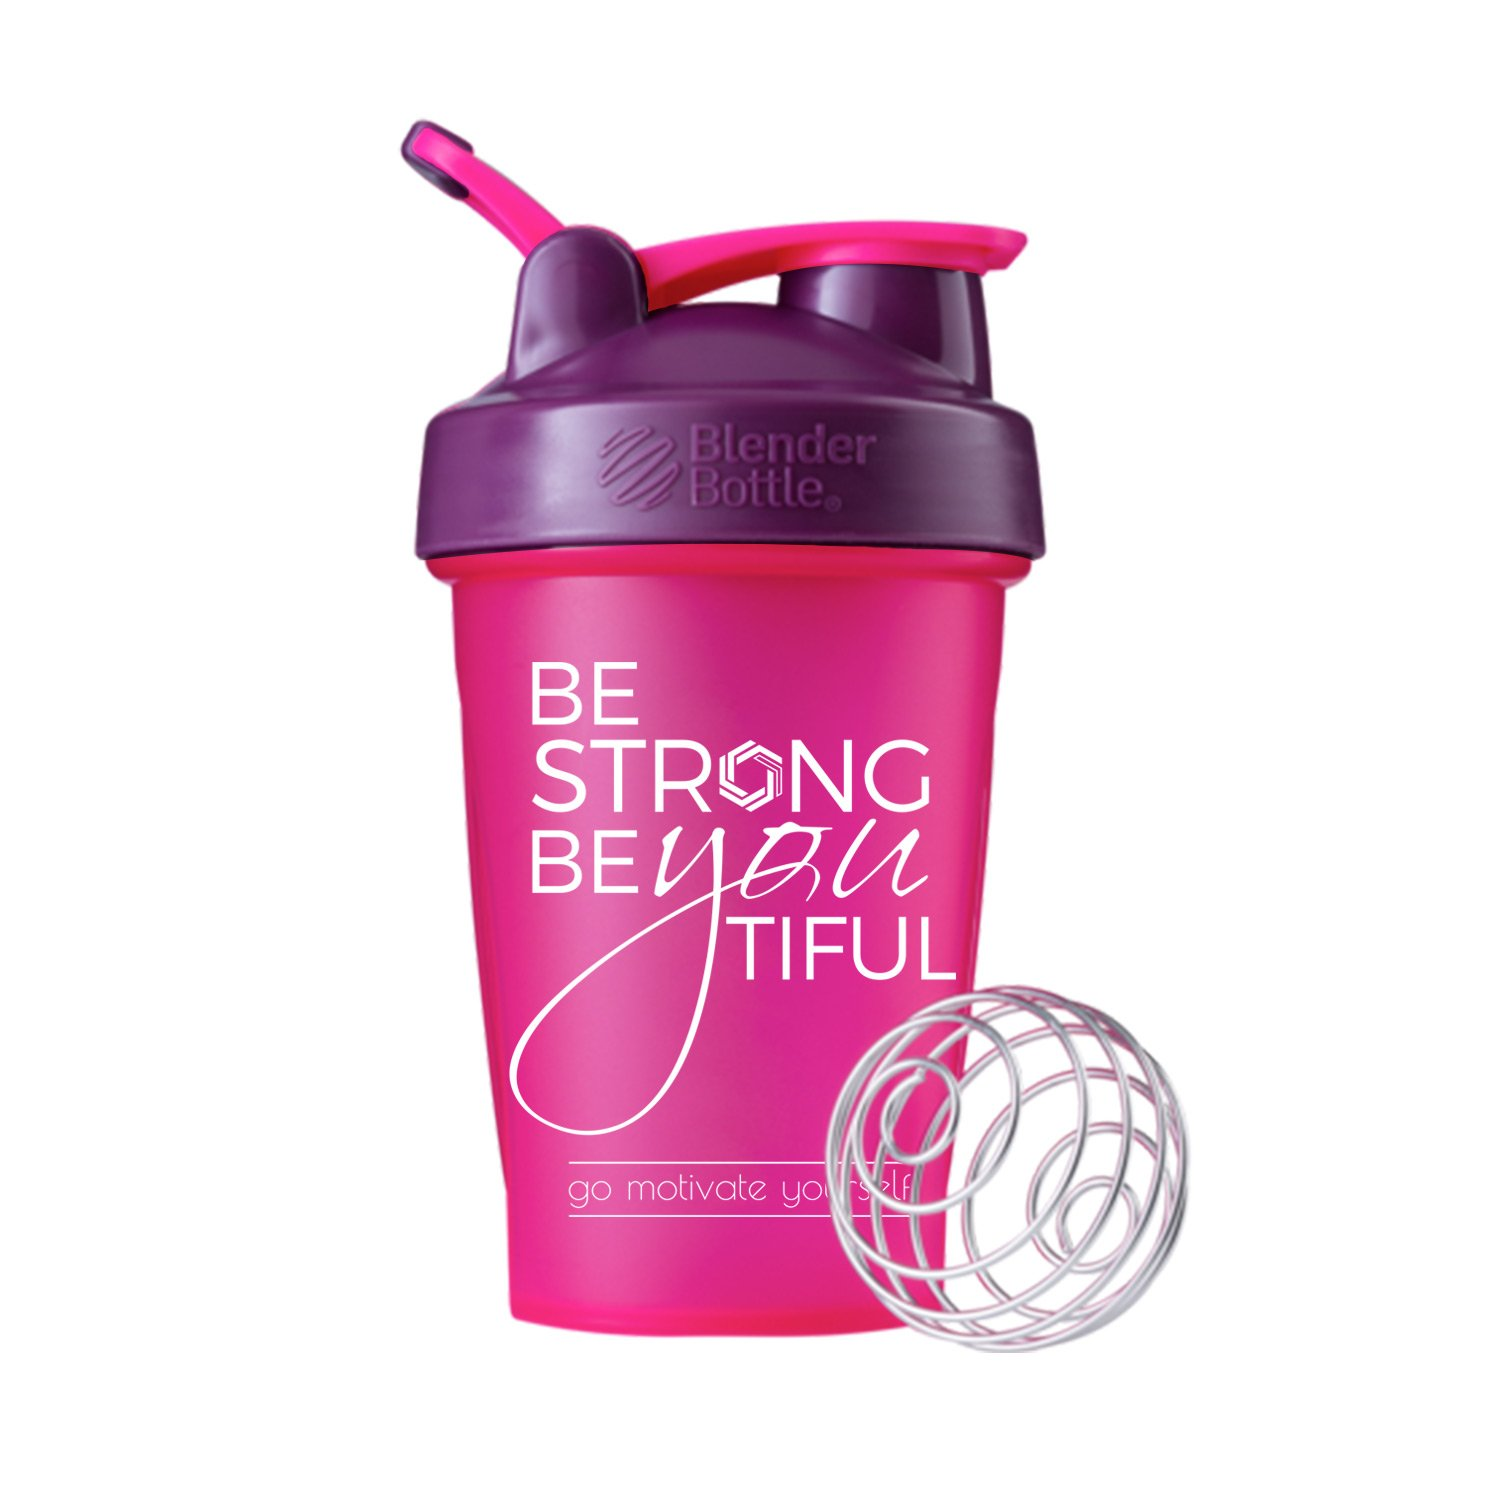 Be Strong BeYOUtiful on BlenderBottle brand Classic shaker cup, 20oz Capacity, Includes BlenderBall whisk (Pink/Plum - 20oz)